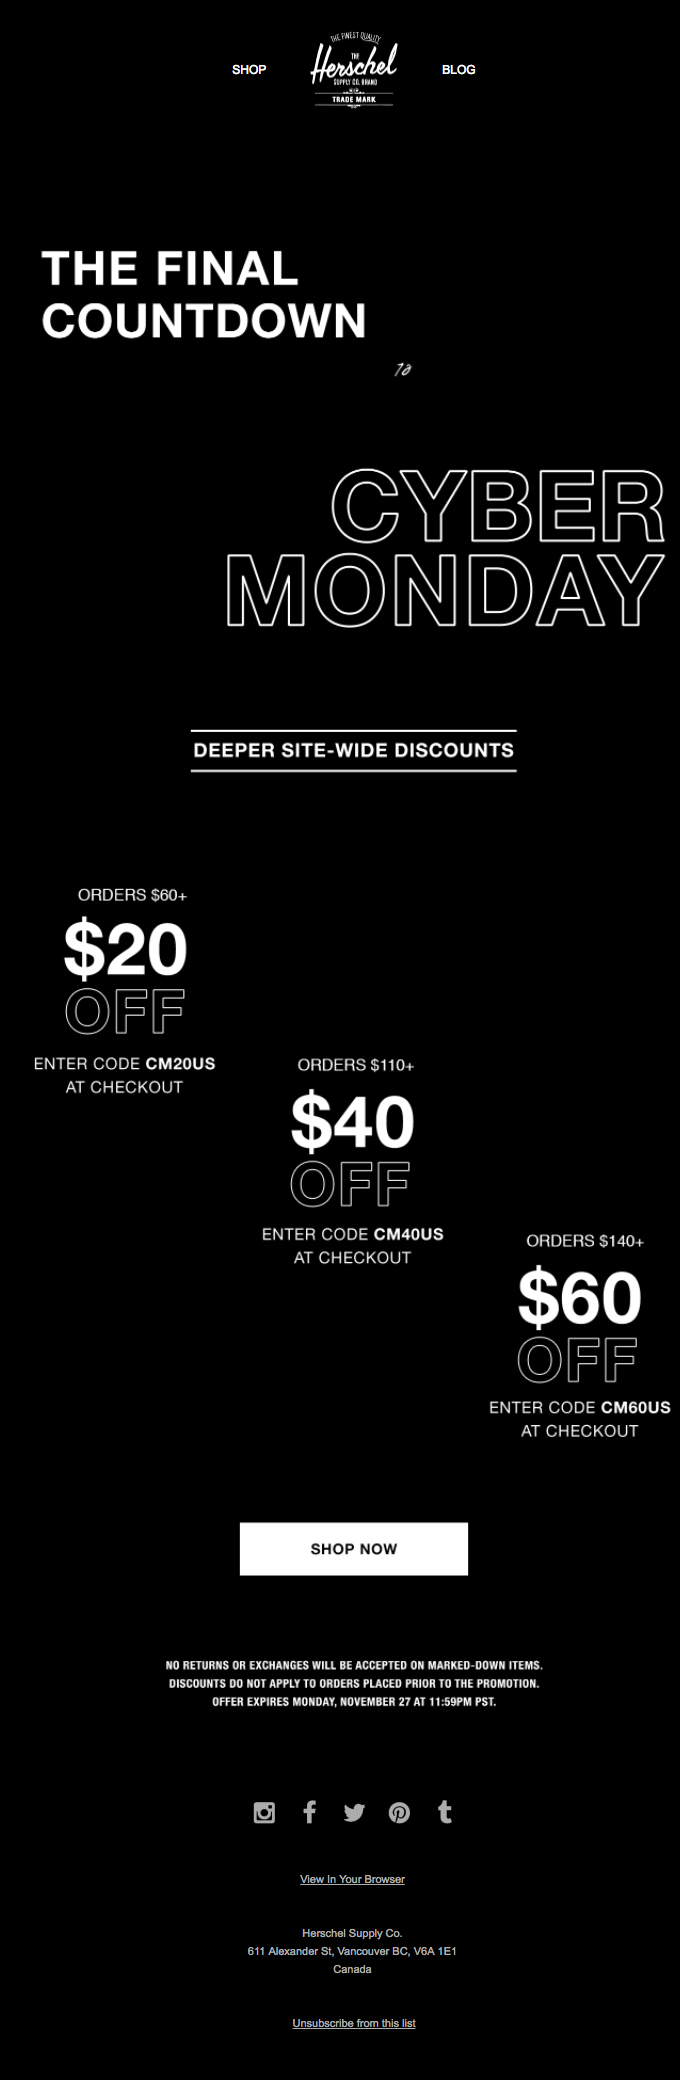 Hershel's email highlights the final countdown to the end of its Cyber Monday sale